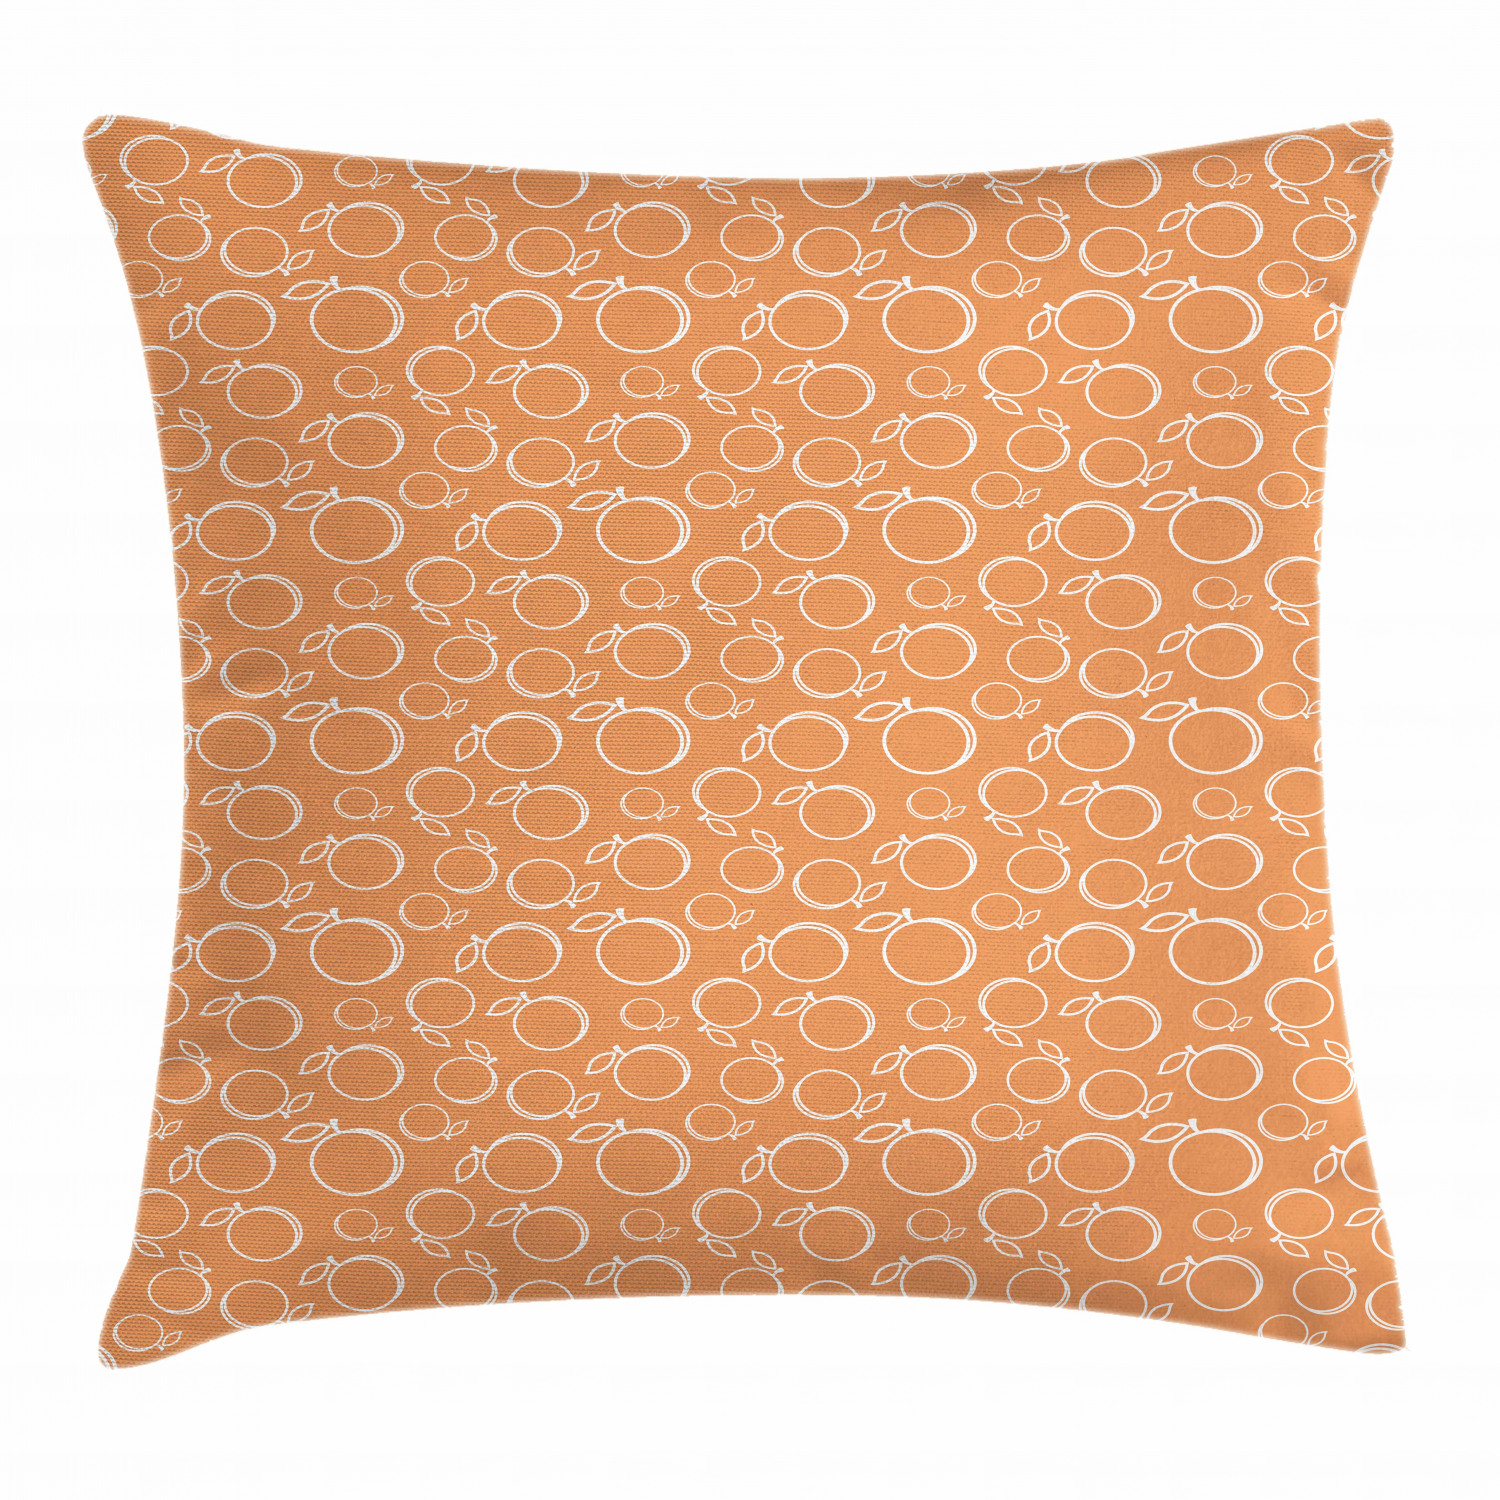 Peach Throw Pillow Cushion Cover Continuous Pattern With Ripe And Sweet Summer Fruits Graphic Image Print Decorative Square Accent Pillow Case 18 X 18 Inches Dark Peach And White By Ambesonne